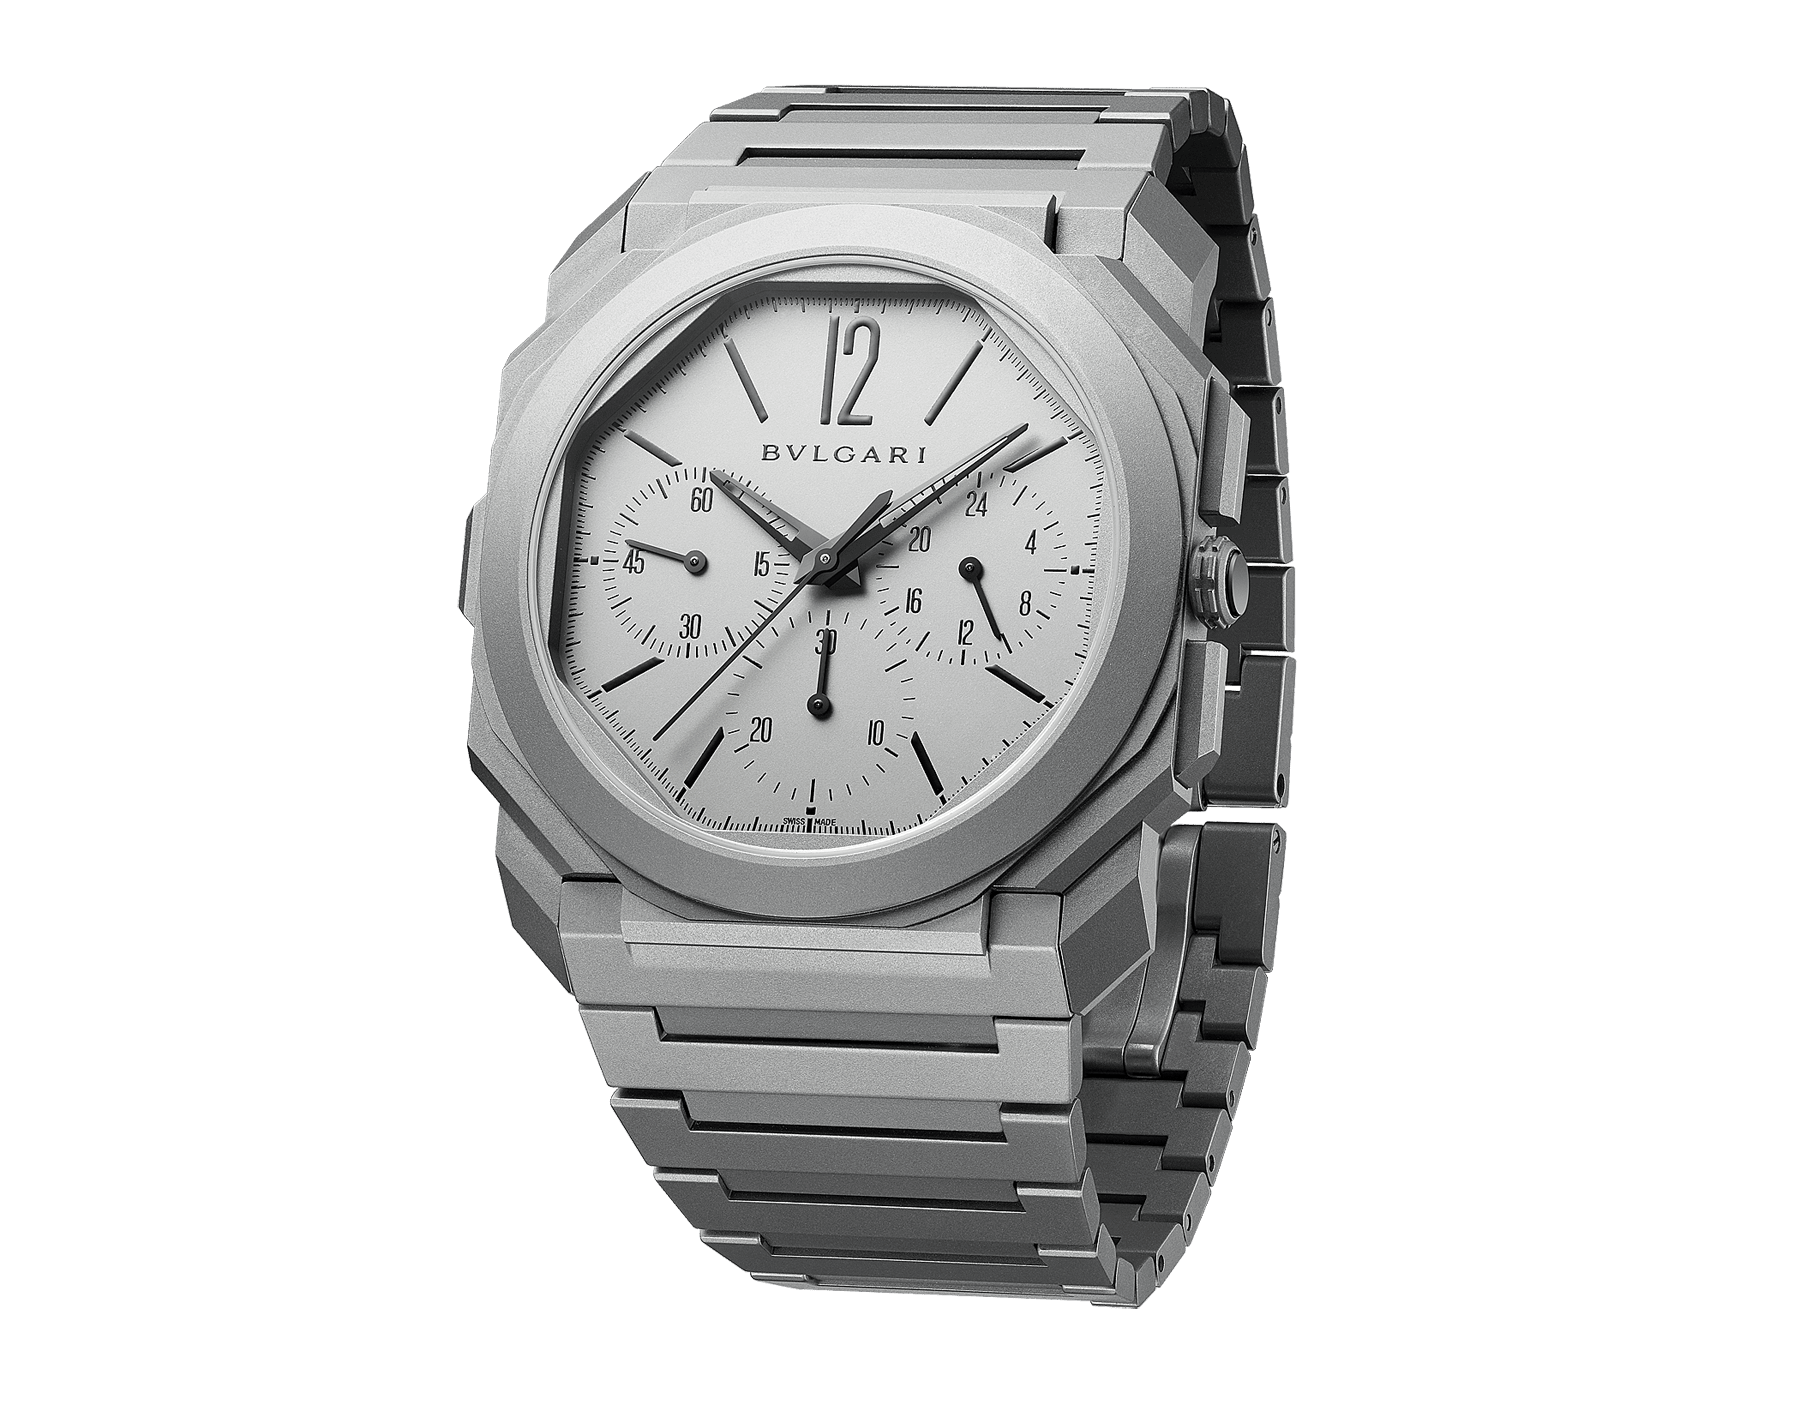 Octo Finissimo Chrono GMT watch with extra-thin mechanical manufacture chronograph and GMT movement, automatic winding, peripheral rotor, sandblasted titanium case, transparent case back, sandblasted titanium dial and bracelet. Water-resistant up to 30 metres 103068 image 2